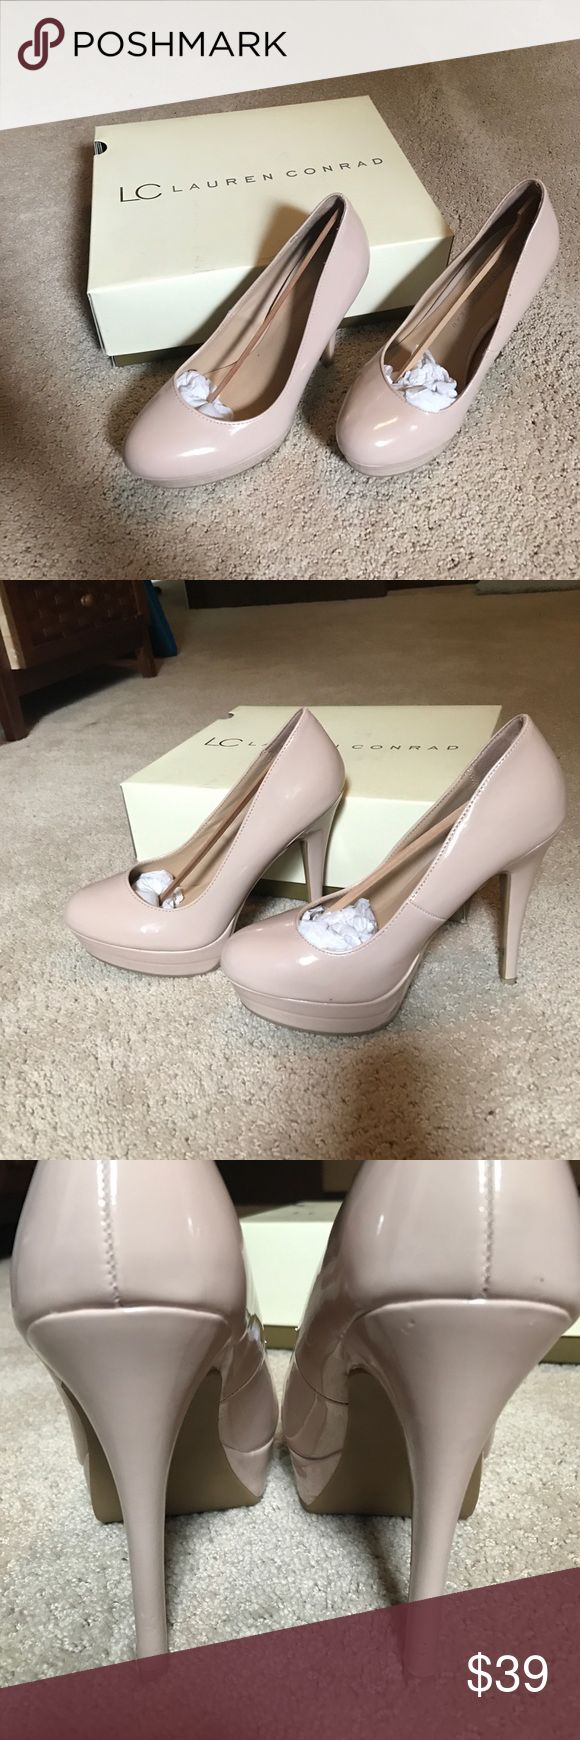 """5.5"""" Lauren Conrad Nude Heels 5.5 inch lauren conrad nude/pink heels! Worn once only, for pictures, so in perfect condition aside from a half centimeter scuff on the back of the right heel. Bottoms are mark free. I can send with the box if you'd like! Offers welcome!! LC Lauren Conrad Shoes Heels"""